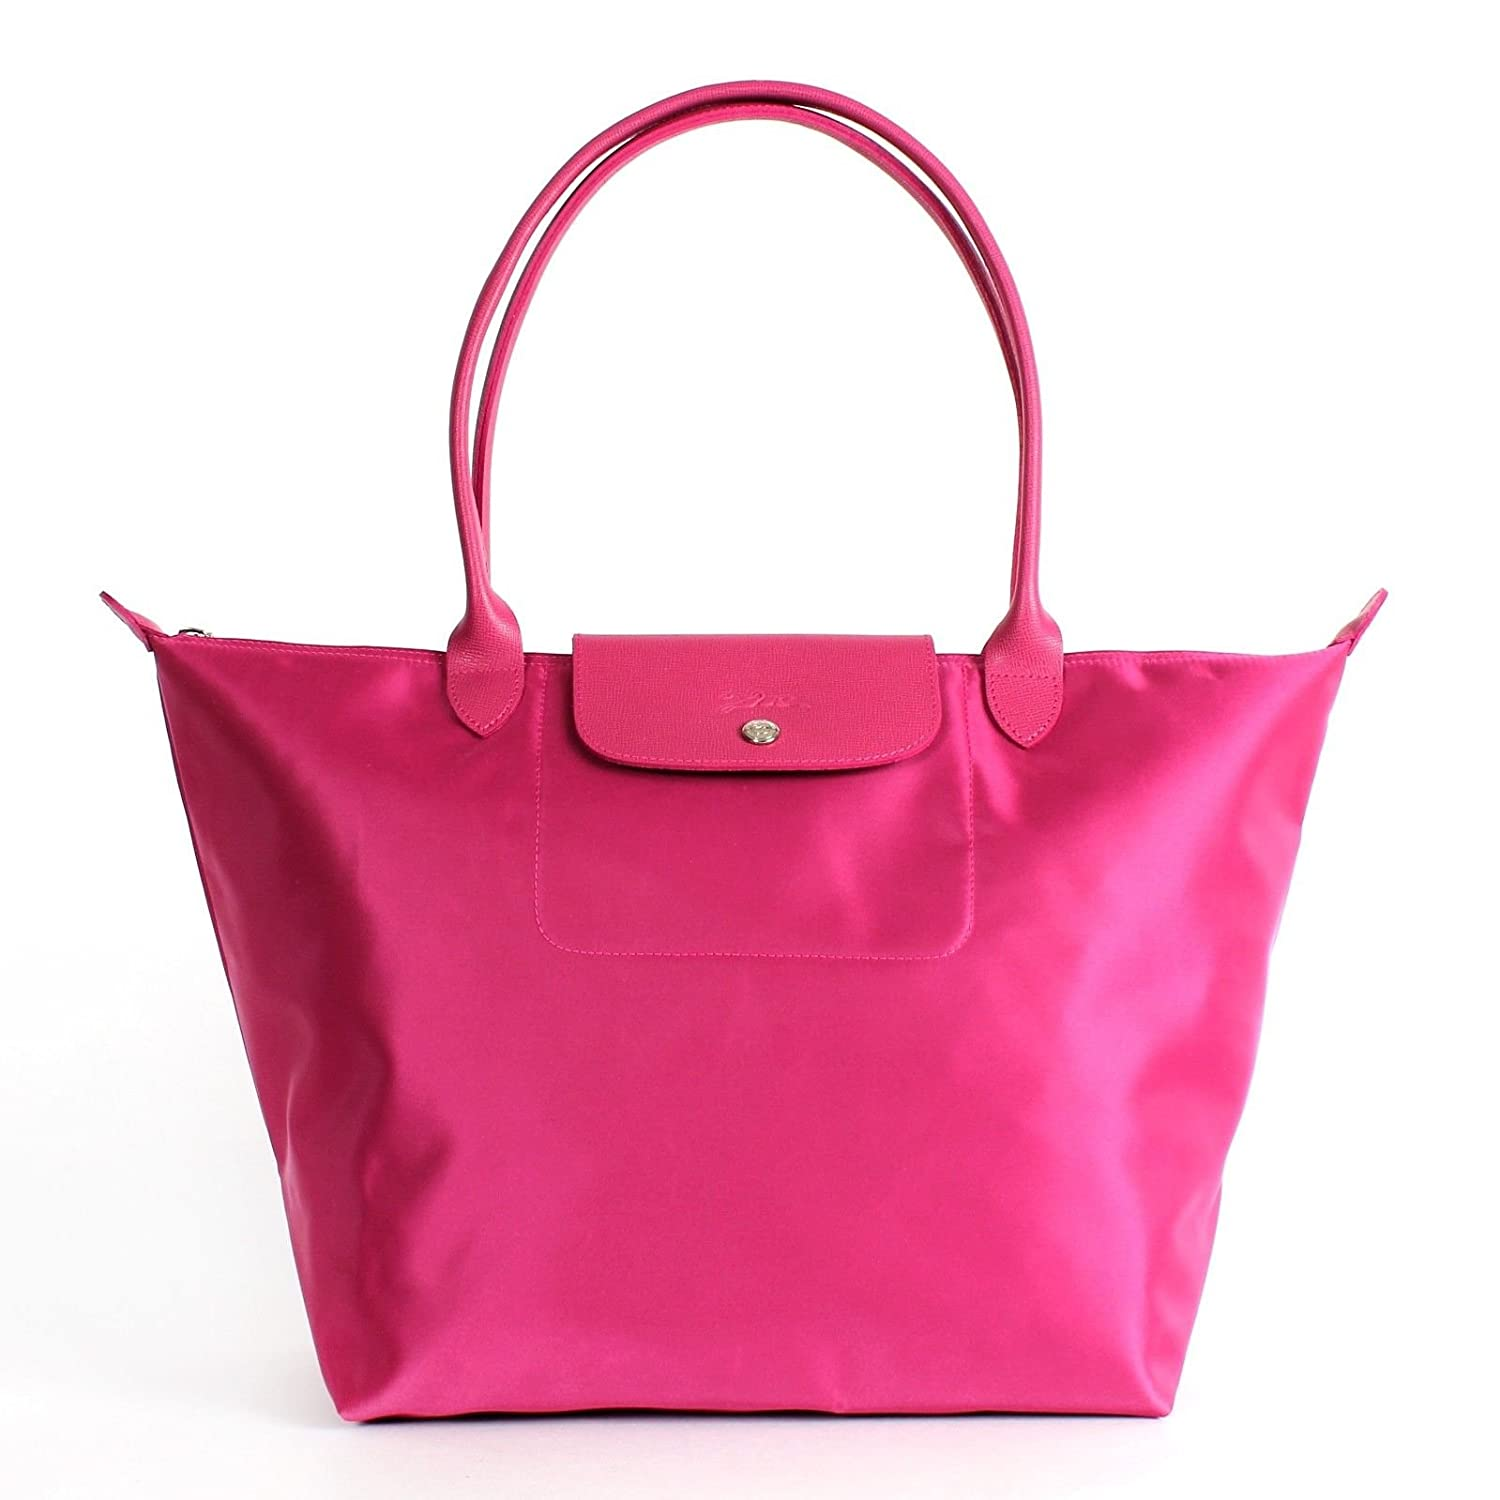 Longchamp Le Pliage Neo Pink Tote Handbag  Amazon.co.uk  Shoes   Bags 3c2966d0f2f08